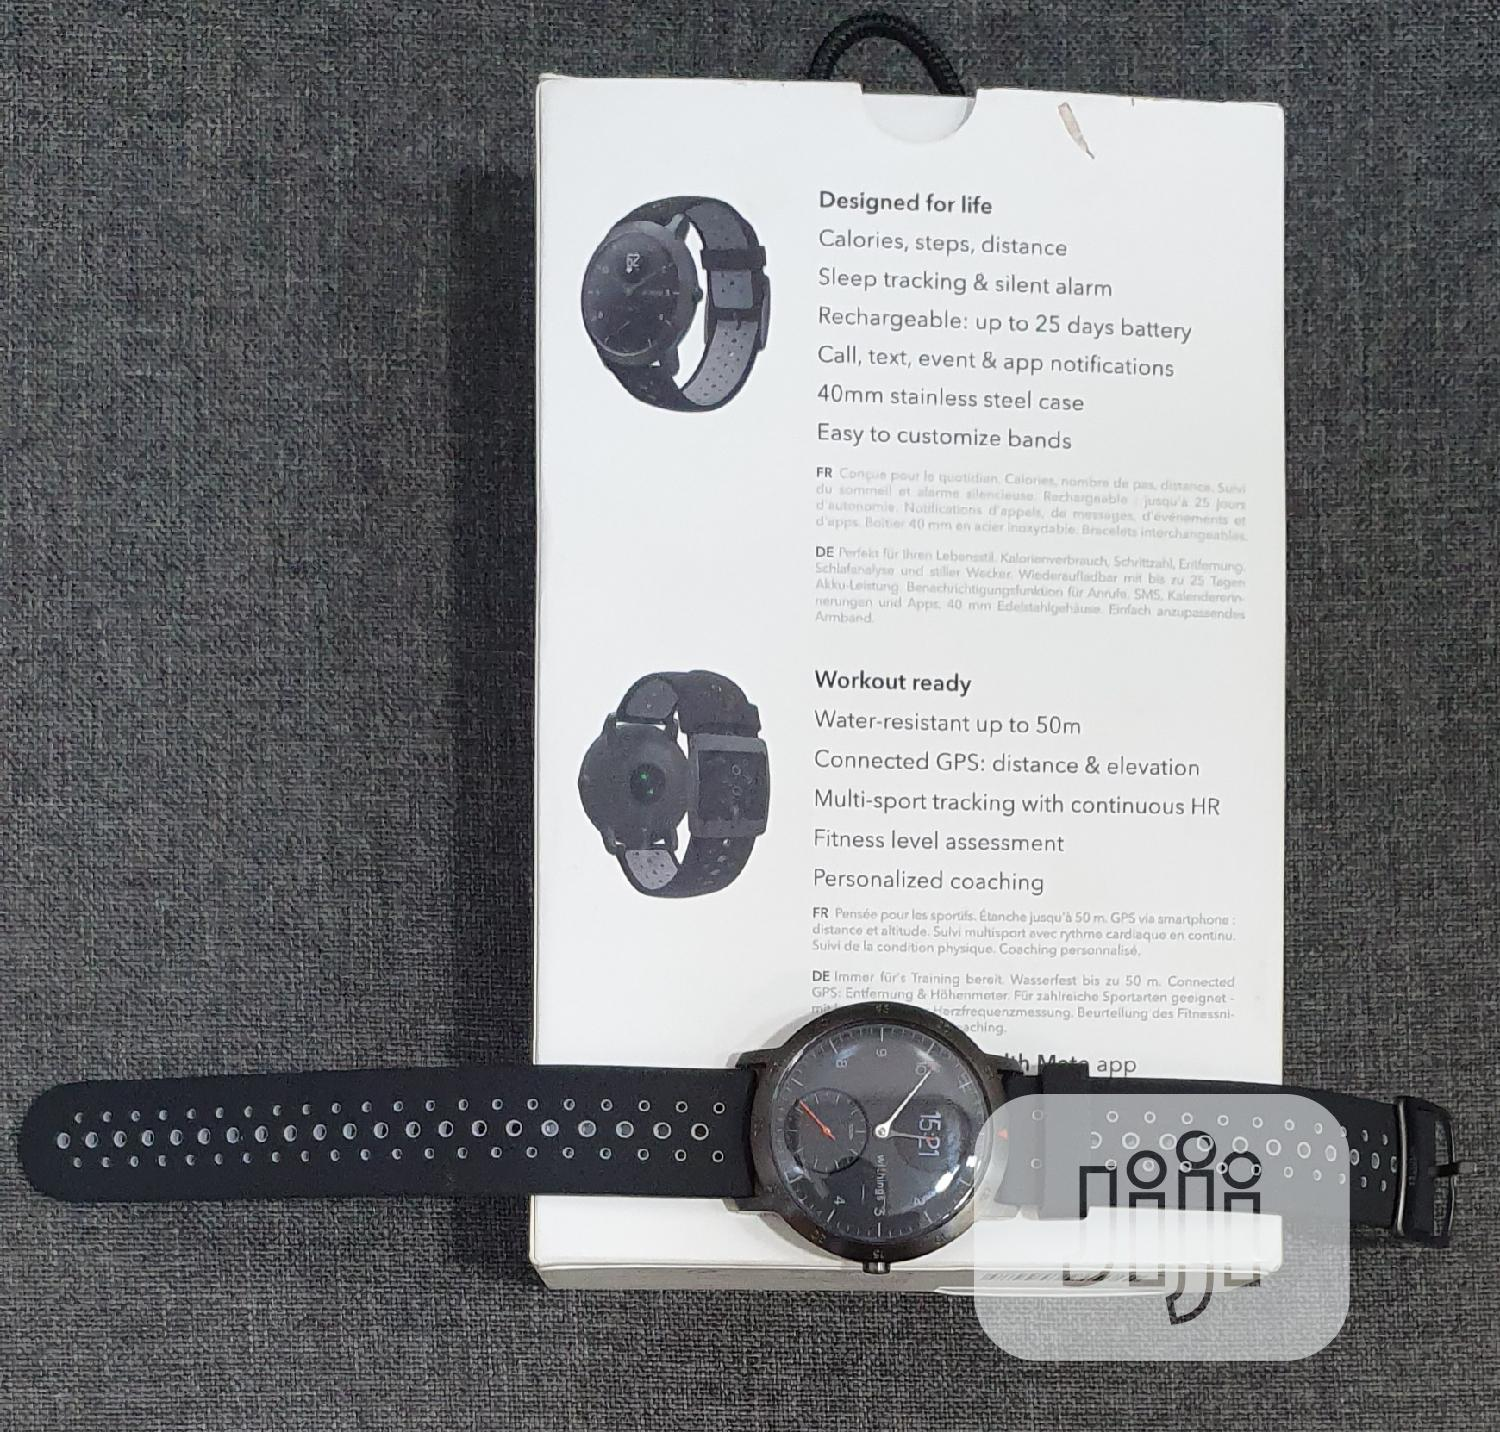 Withings Multi Sport Hybrid Smart Watch   Smart Watches & Trackers for sale in Ikeja, Lagos State, Nigeria